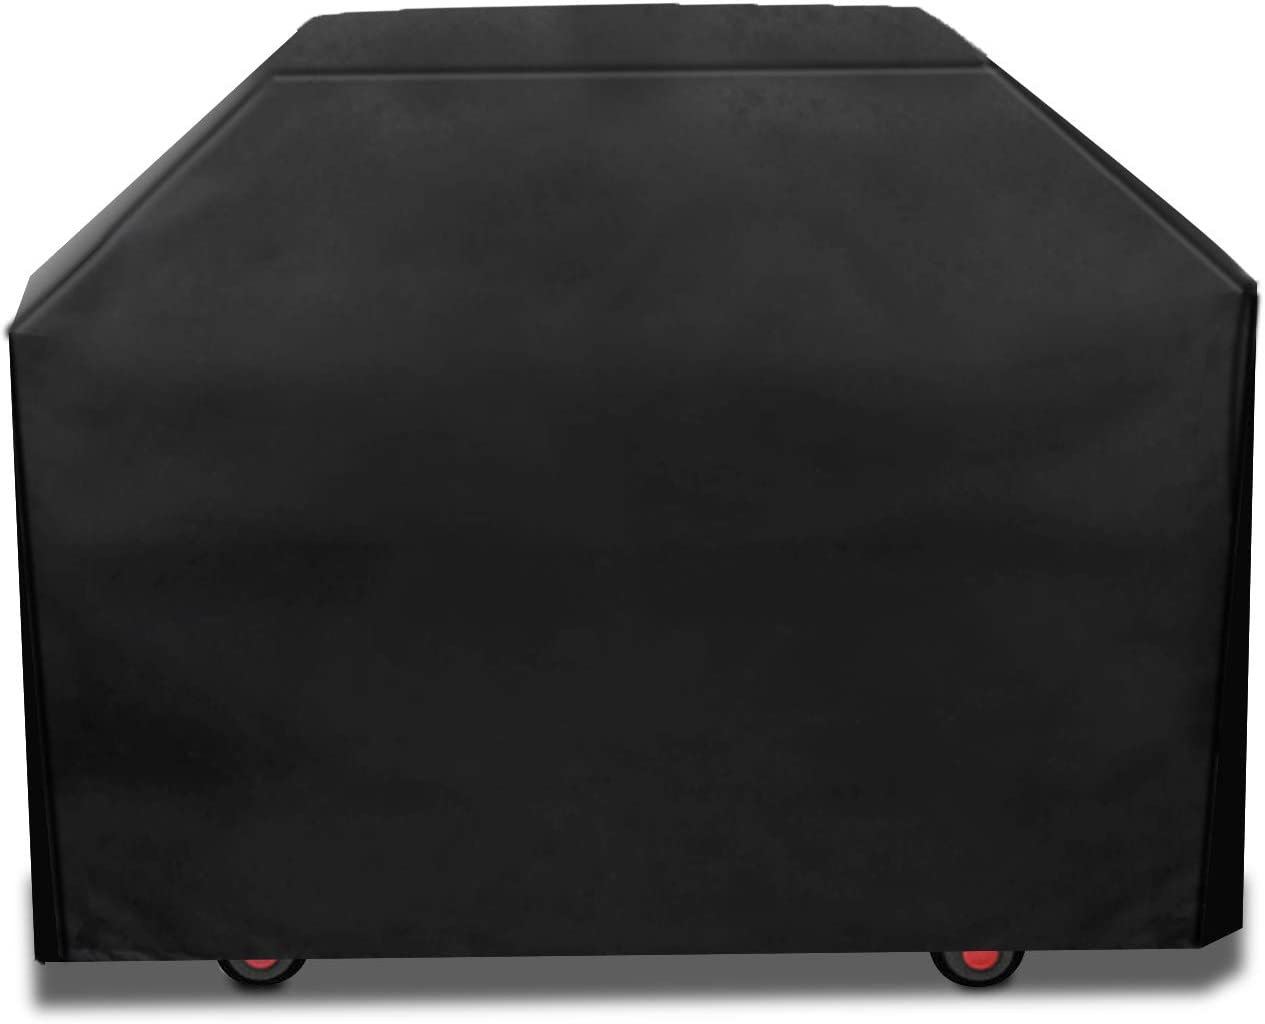 Nicsir Cover Grill BBQ Cover Dustproof, Rainproof and Sunproof Cloth Cover Suitable for All Kinds Barbecue Grill Brands 58x24x46 Inch (Black) : Garden & Outdoor